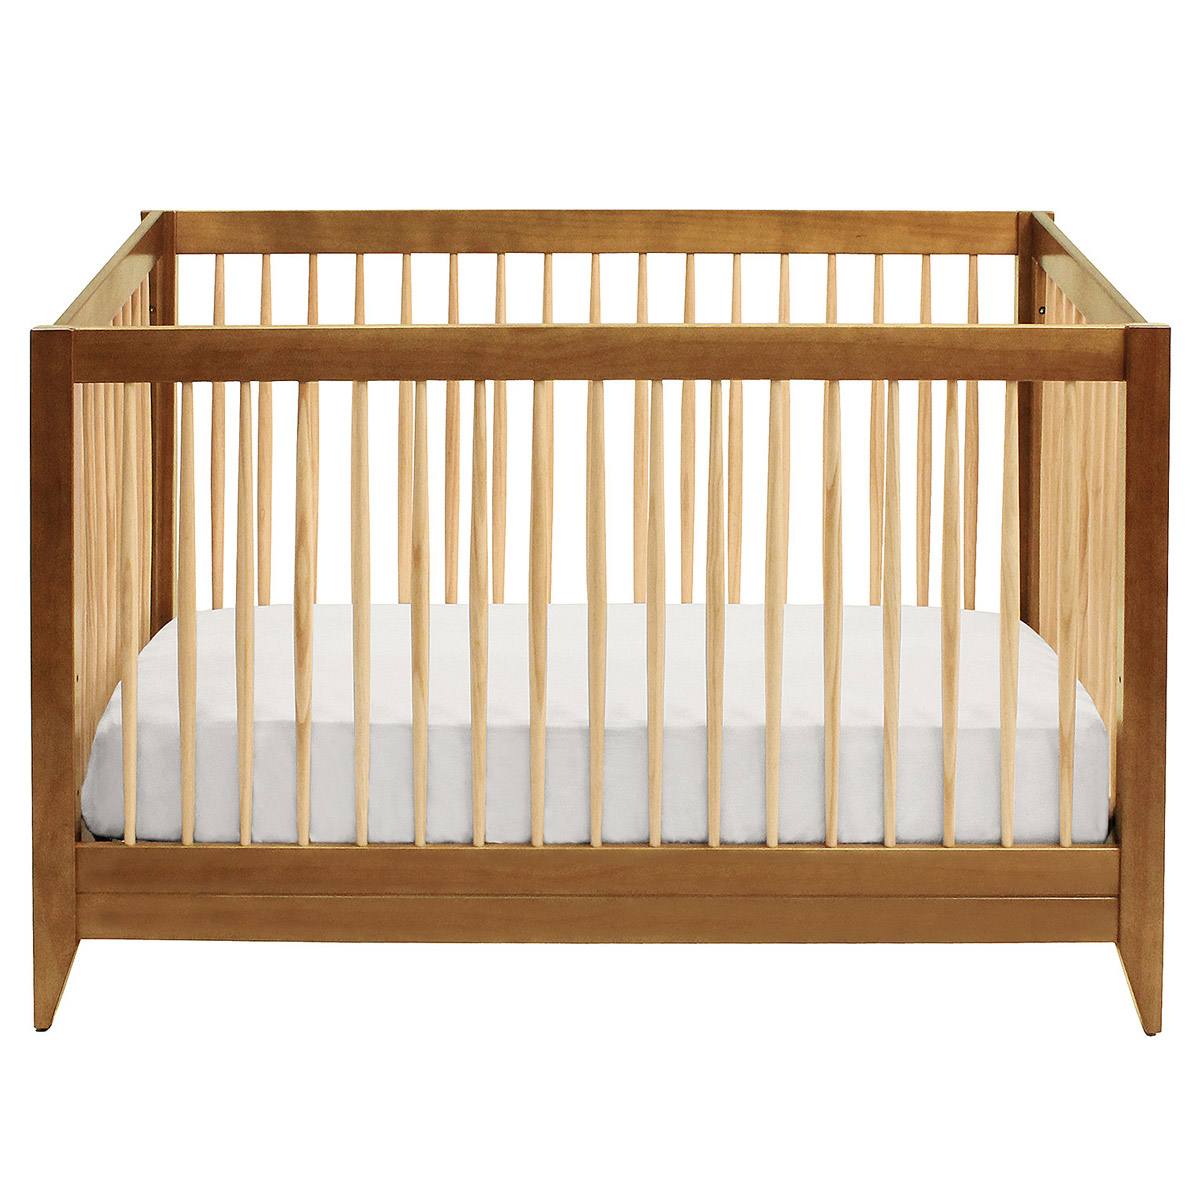 davinci highland crib in chestnut ships free at simply baby furniture